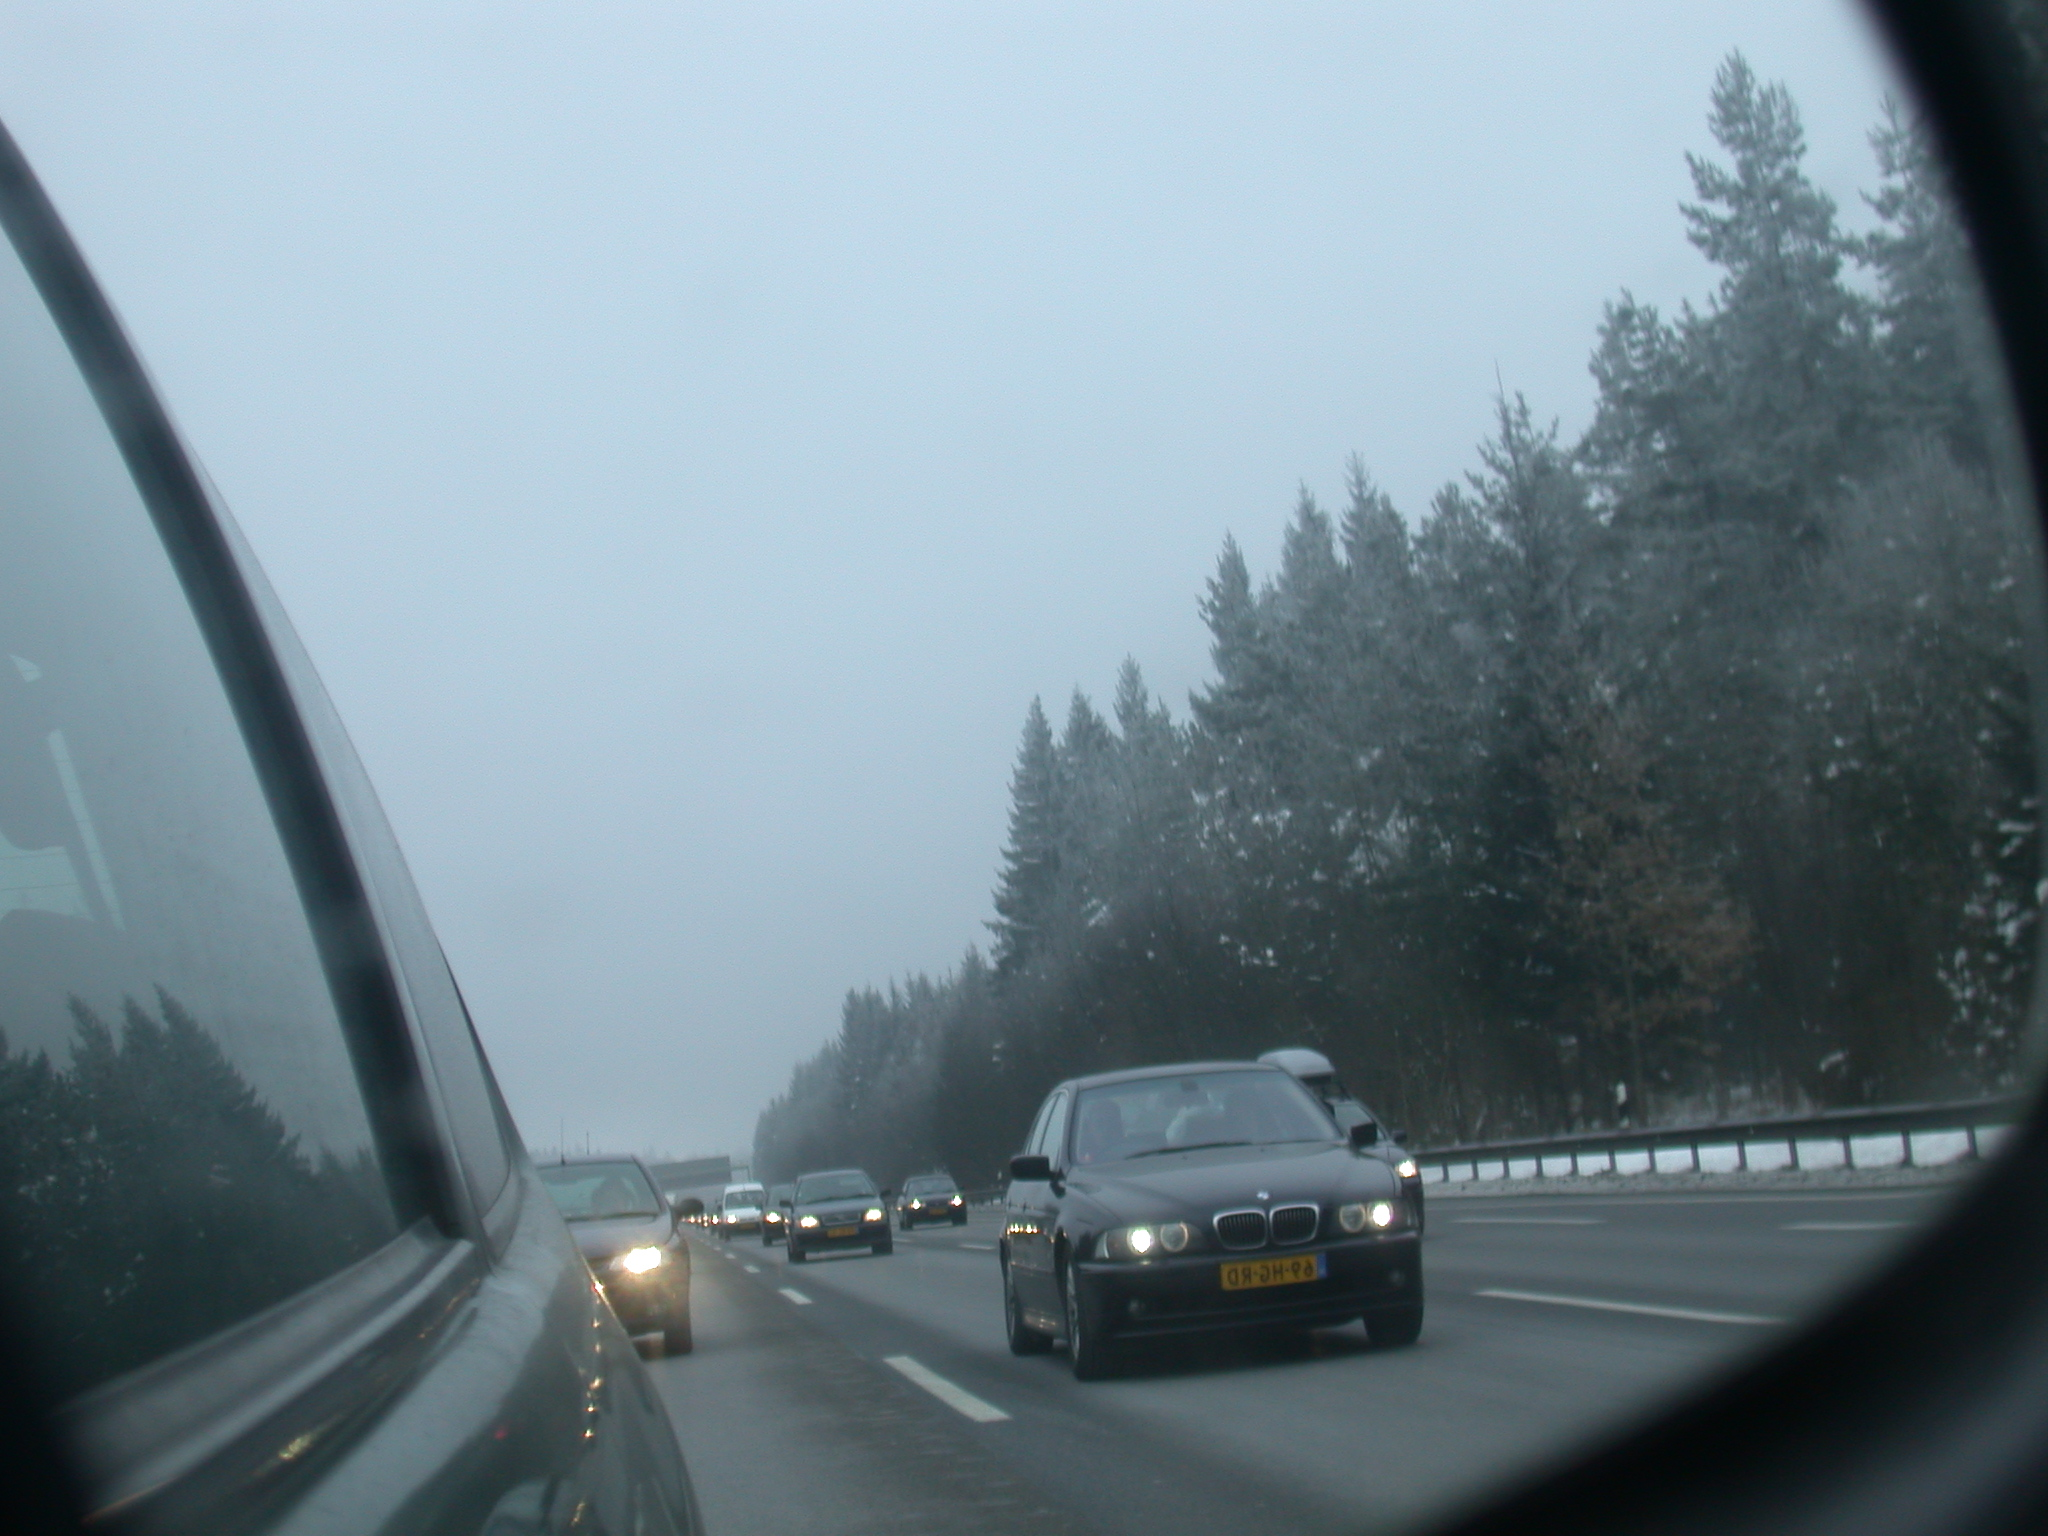 car rearview rear-view rear view mirror highway autobahn cars speed snow winter